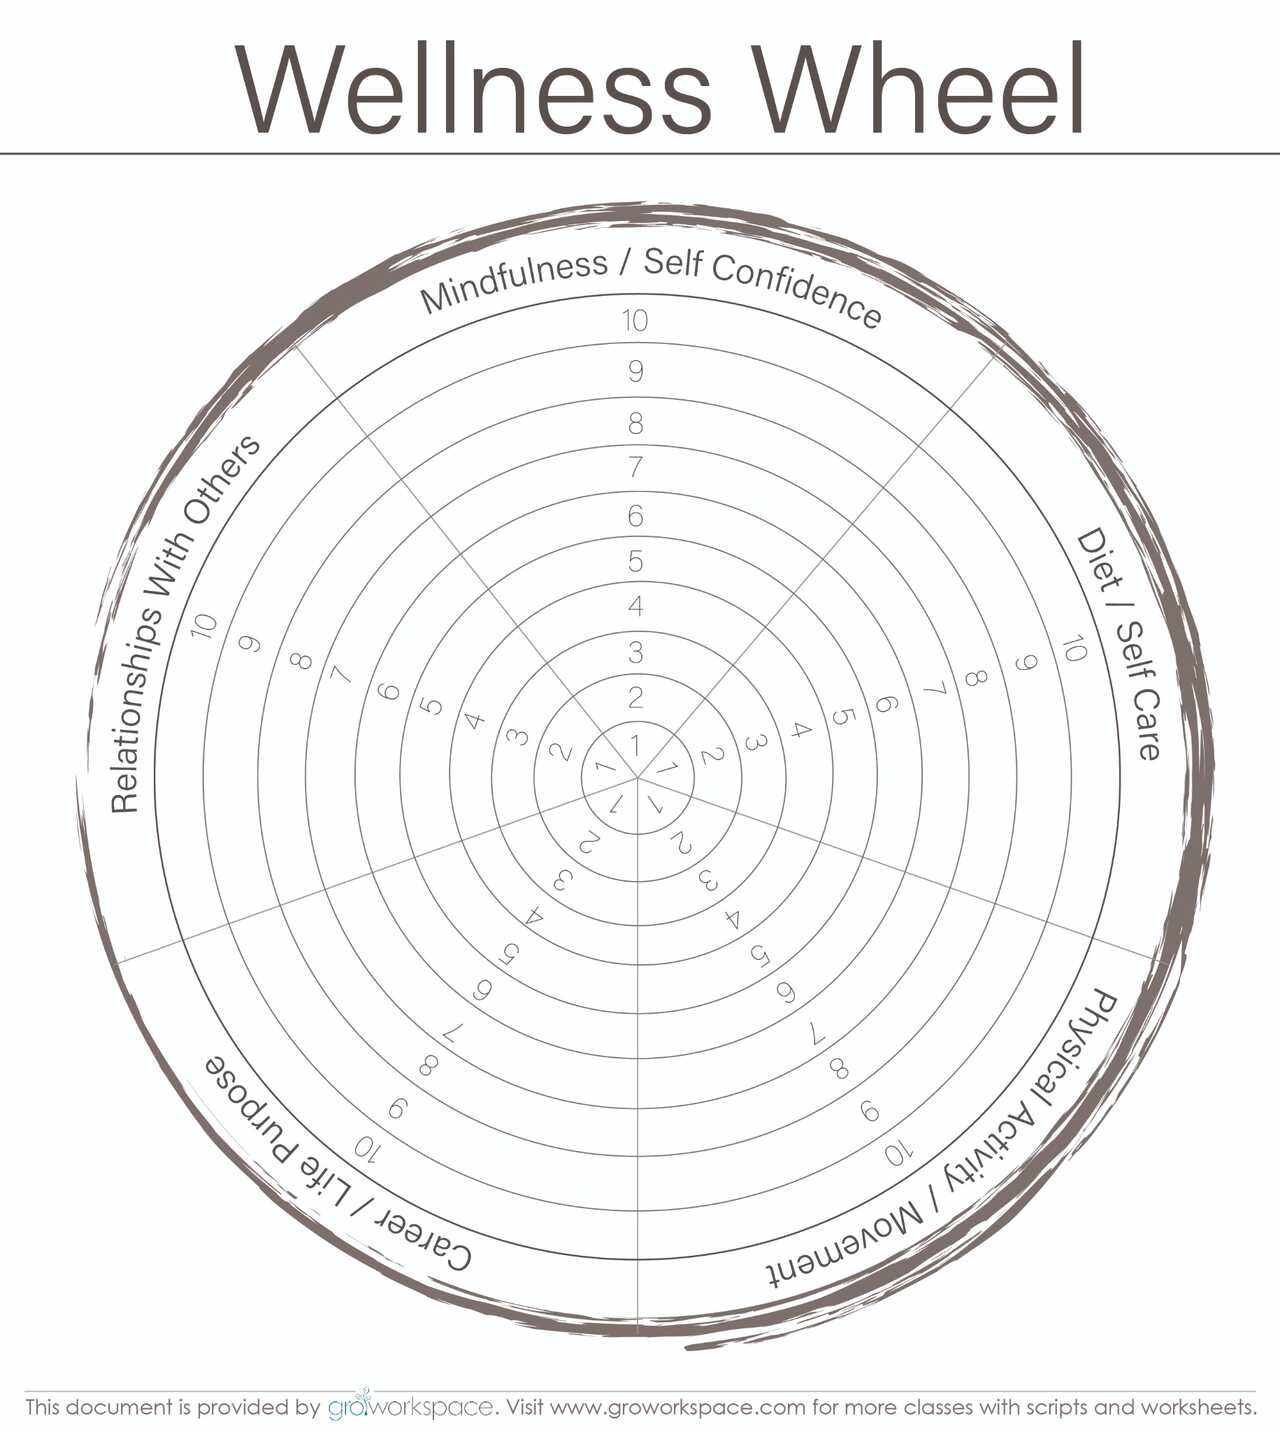 Take a moment to look at this wellness wheel and explore